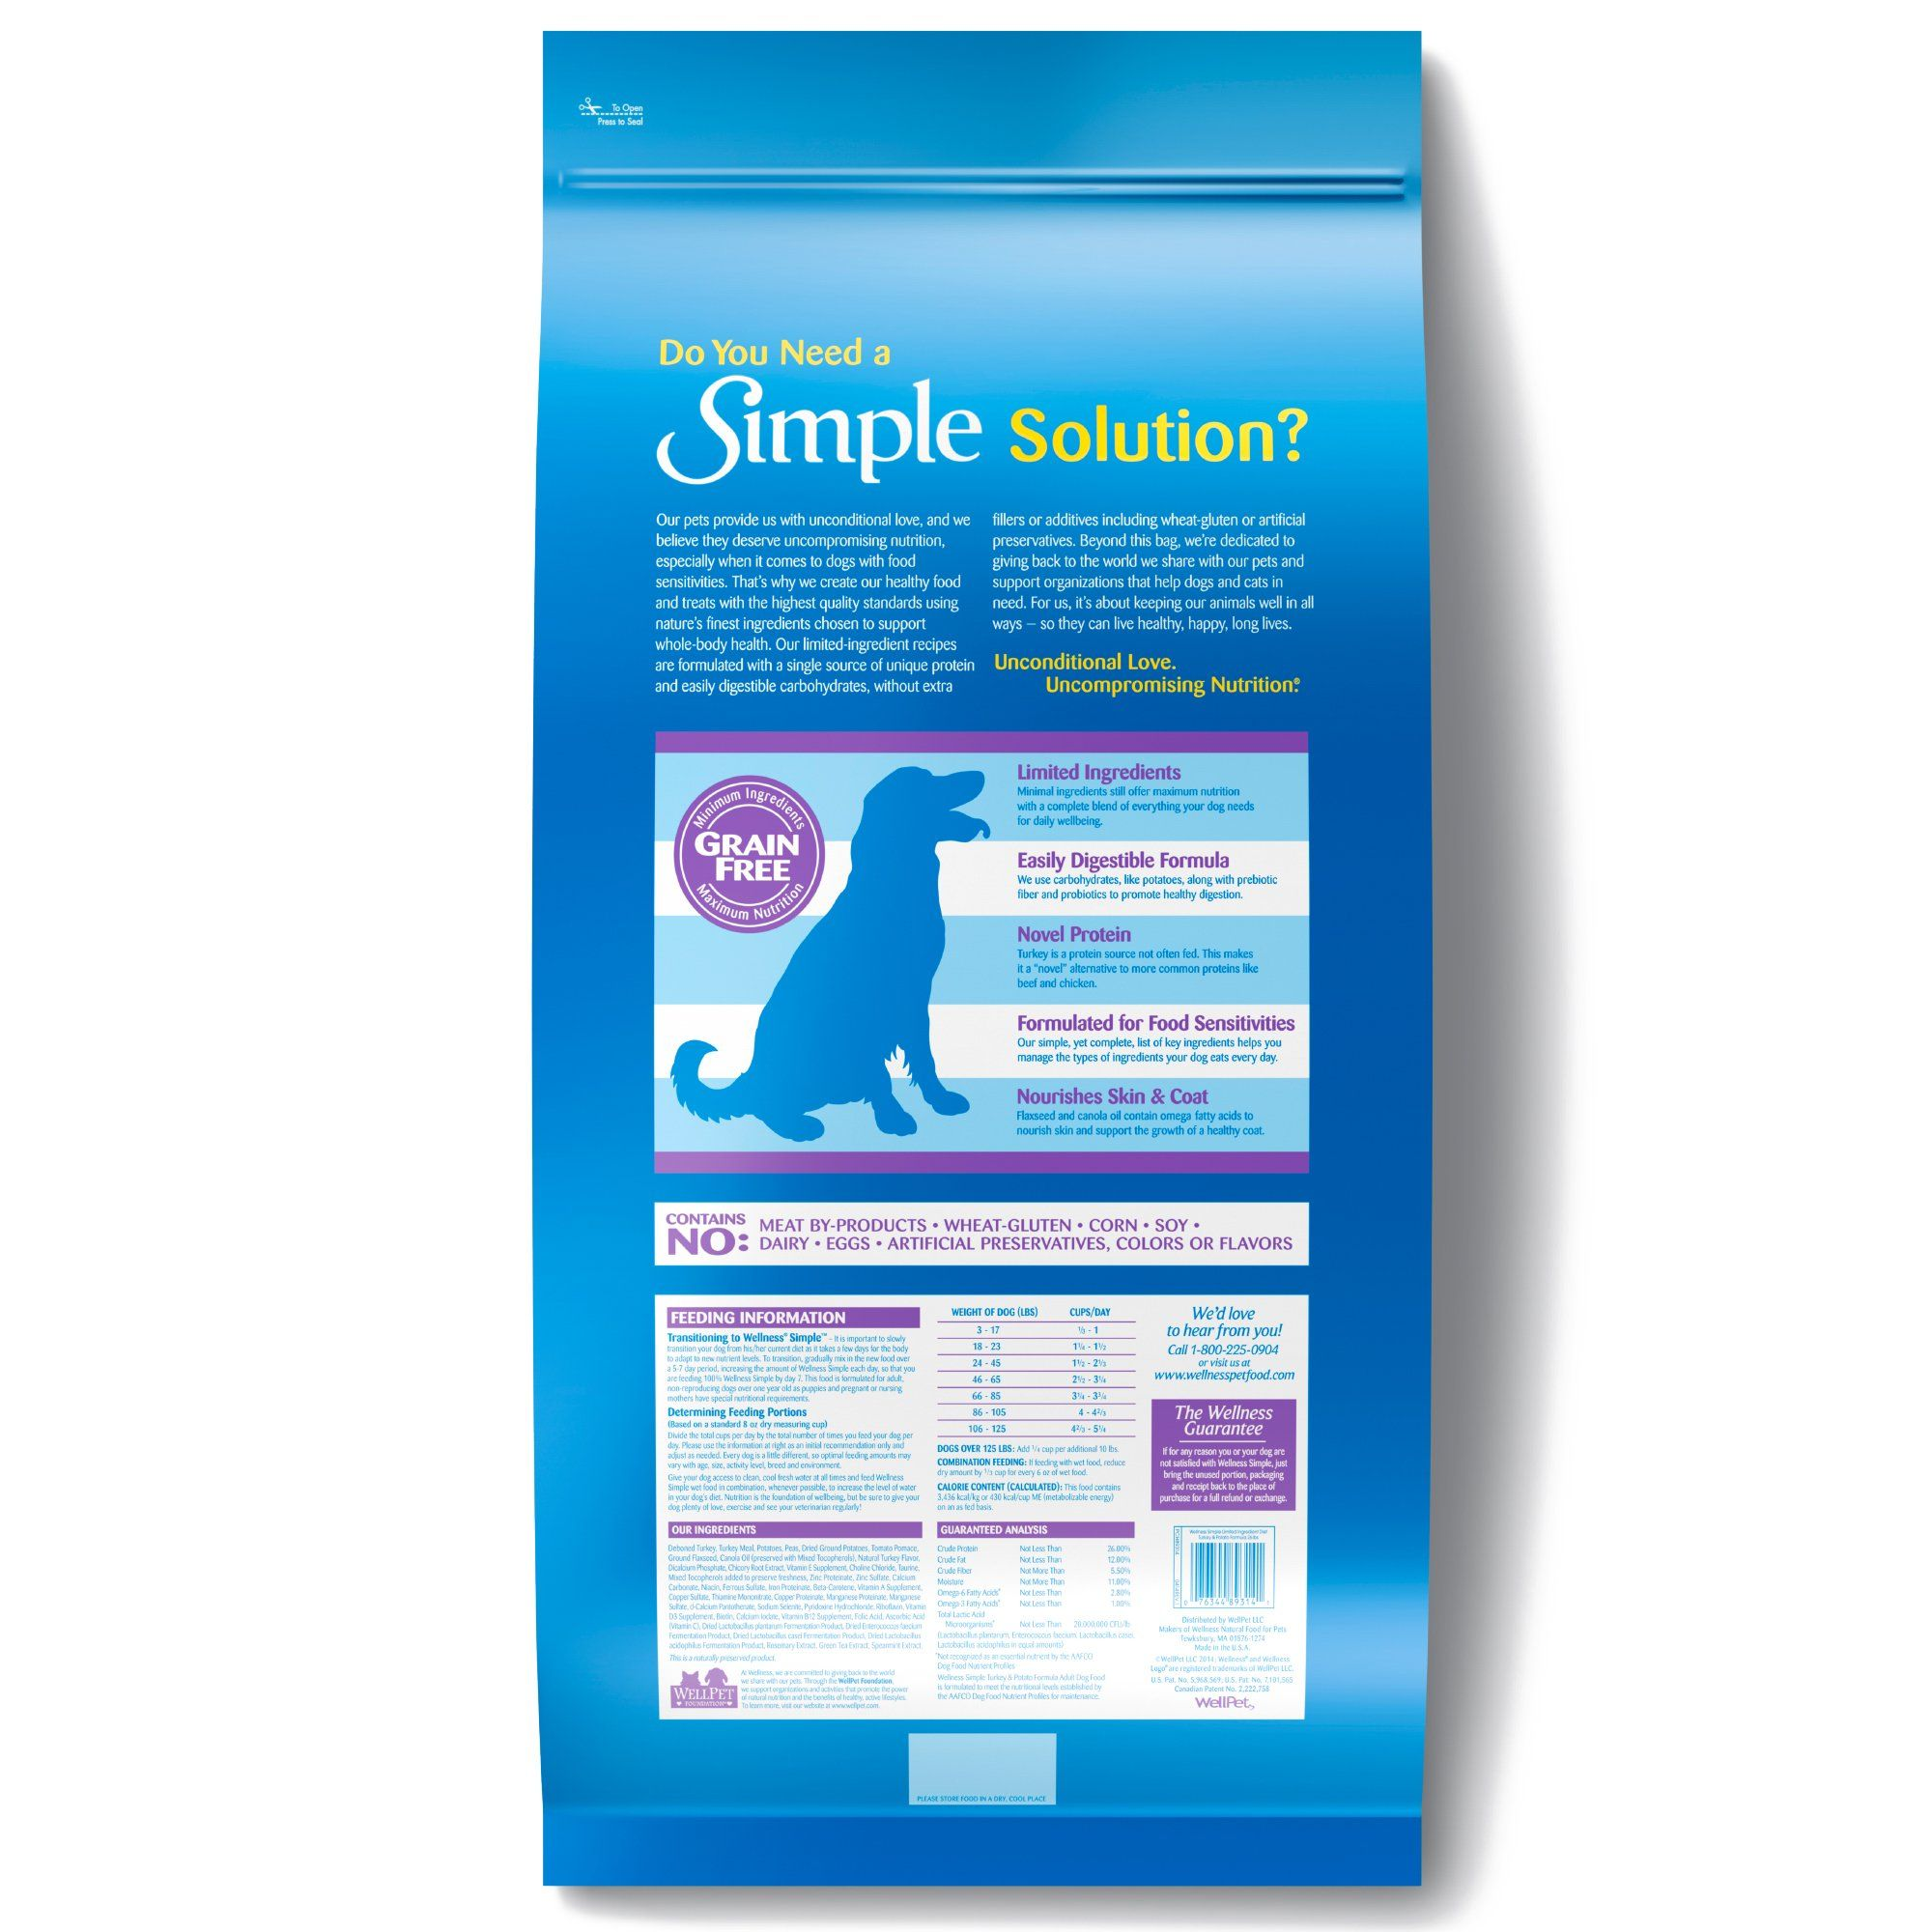 Wellness Simple Natural Grain Free Limited Ingredient Turkey And Potato Recipe Dry Dog Food 26 Lbs Petco In 2020 Healthy Dog Food Recipes Dry Dog Food Dog Food Recipes